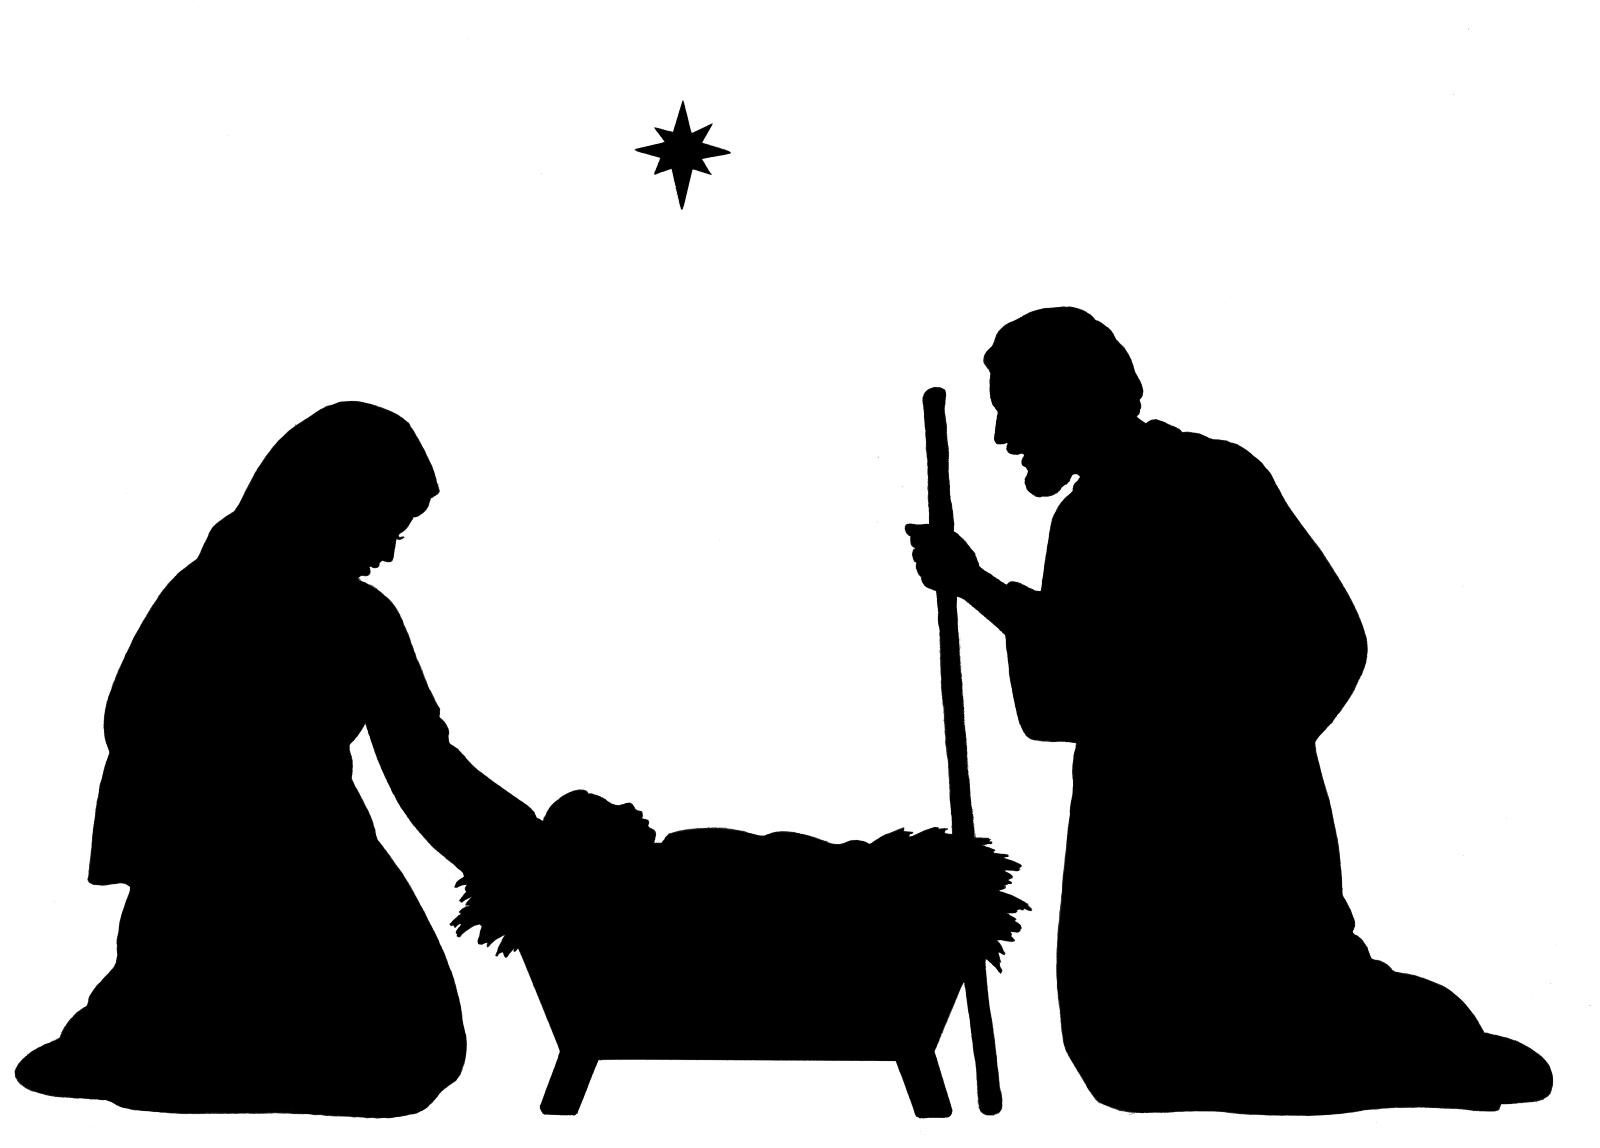 Free Nativity Clipart Silhouette   Free Download Best Free Nativity - Free Printable Nativity Silhouette